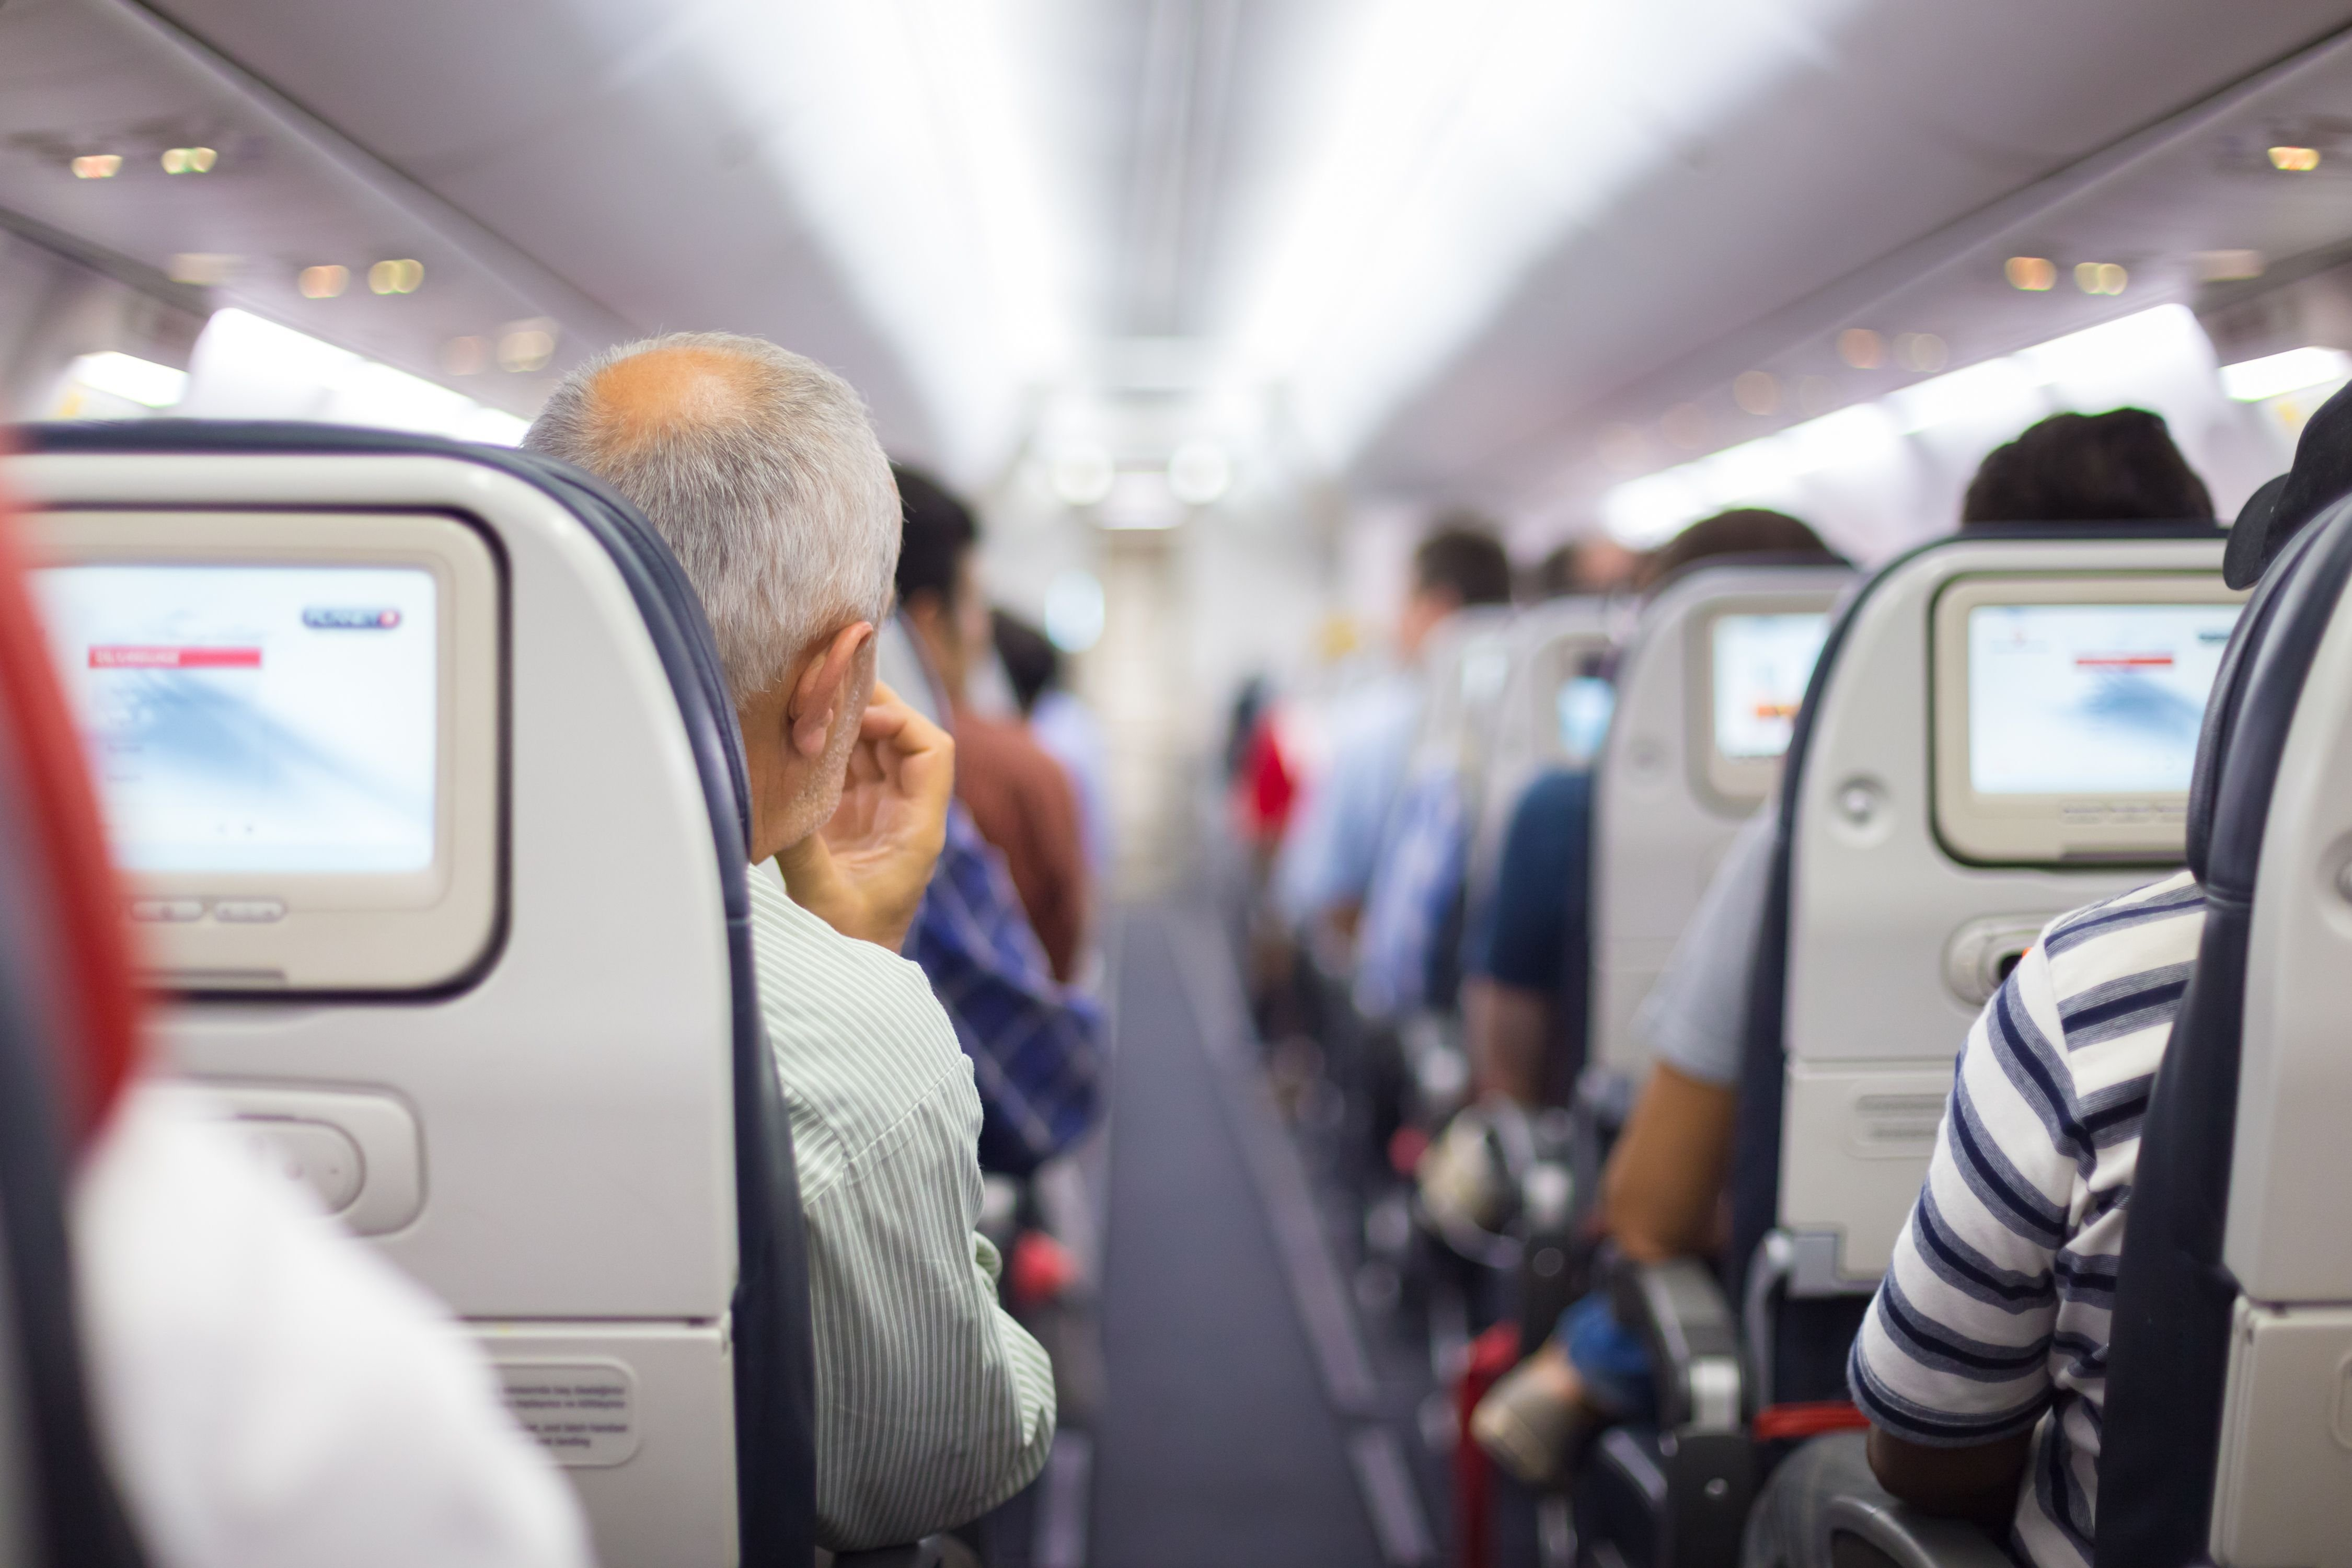 The main aisle of a plane. | Source: Shutterstock